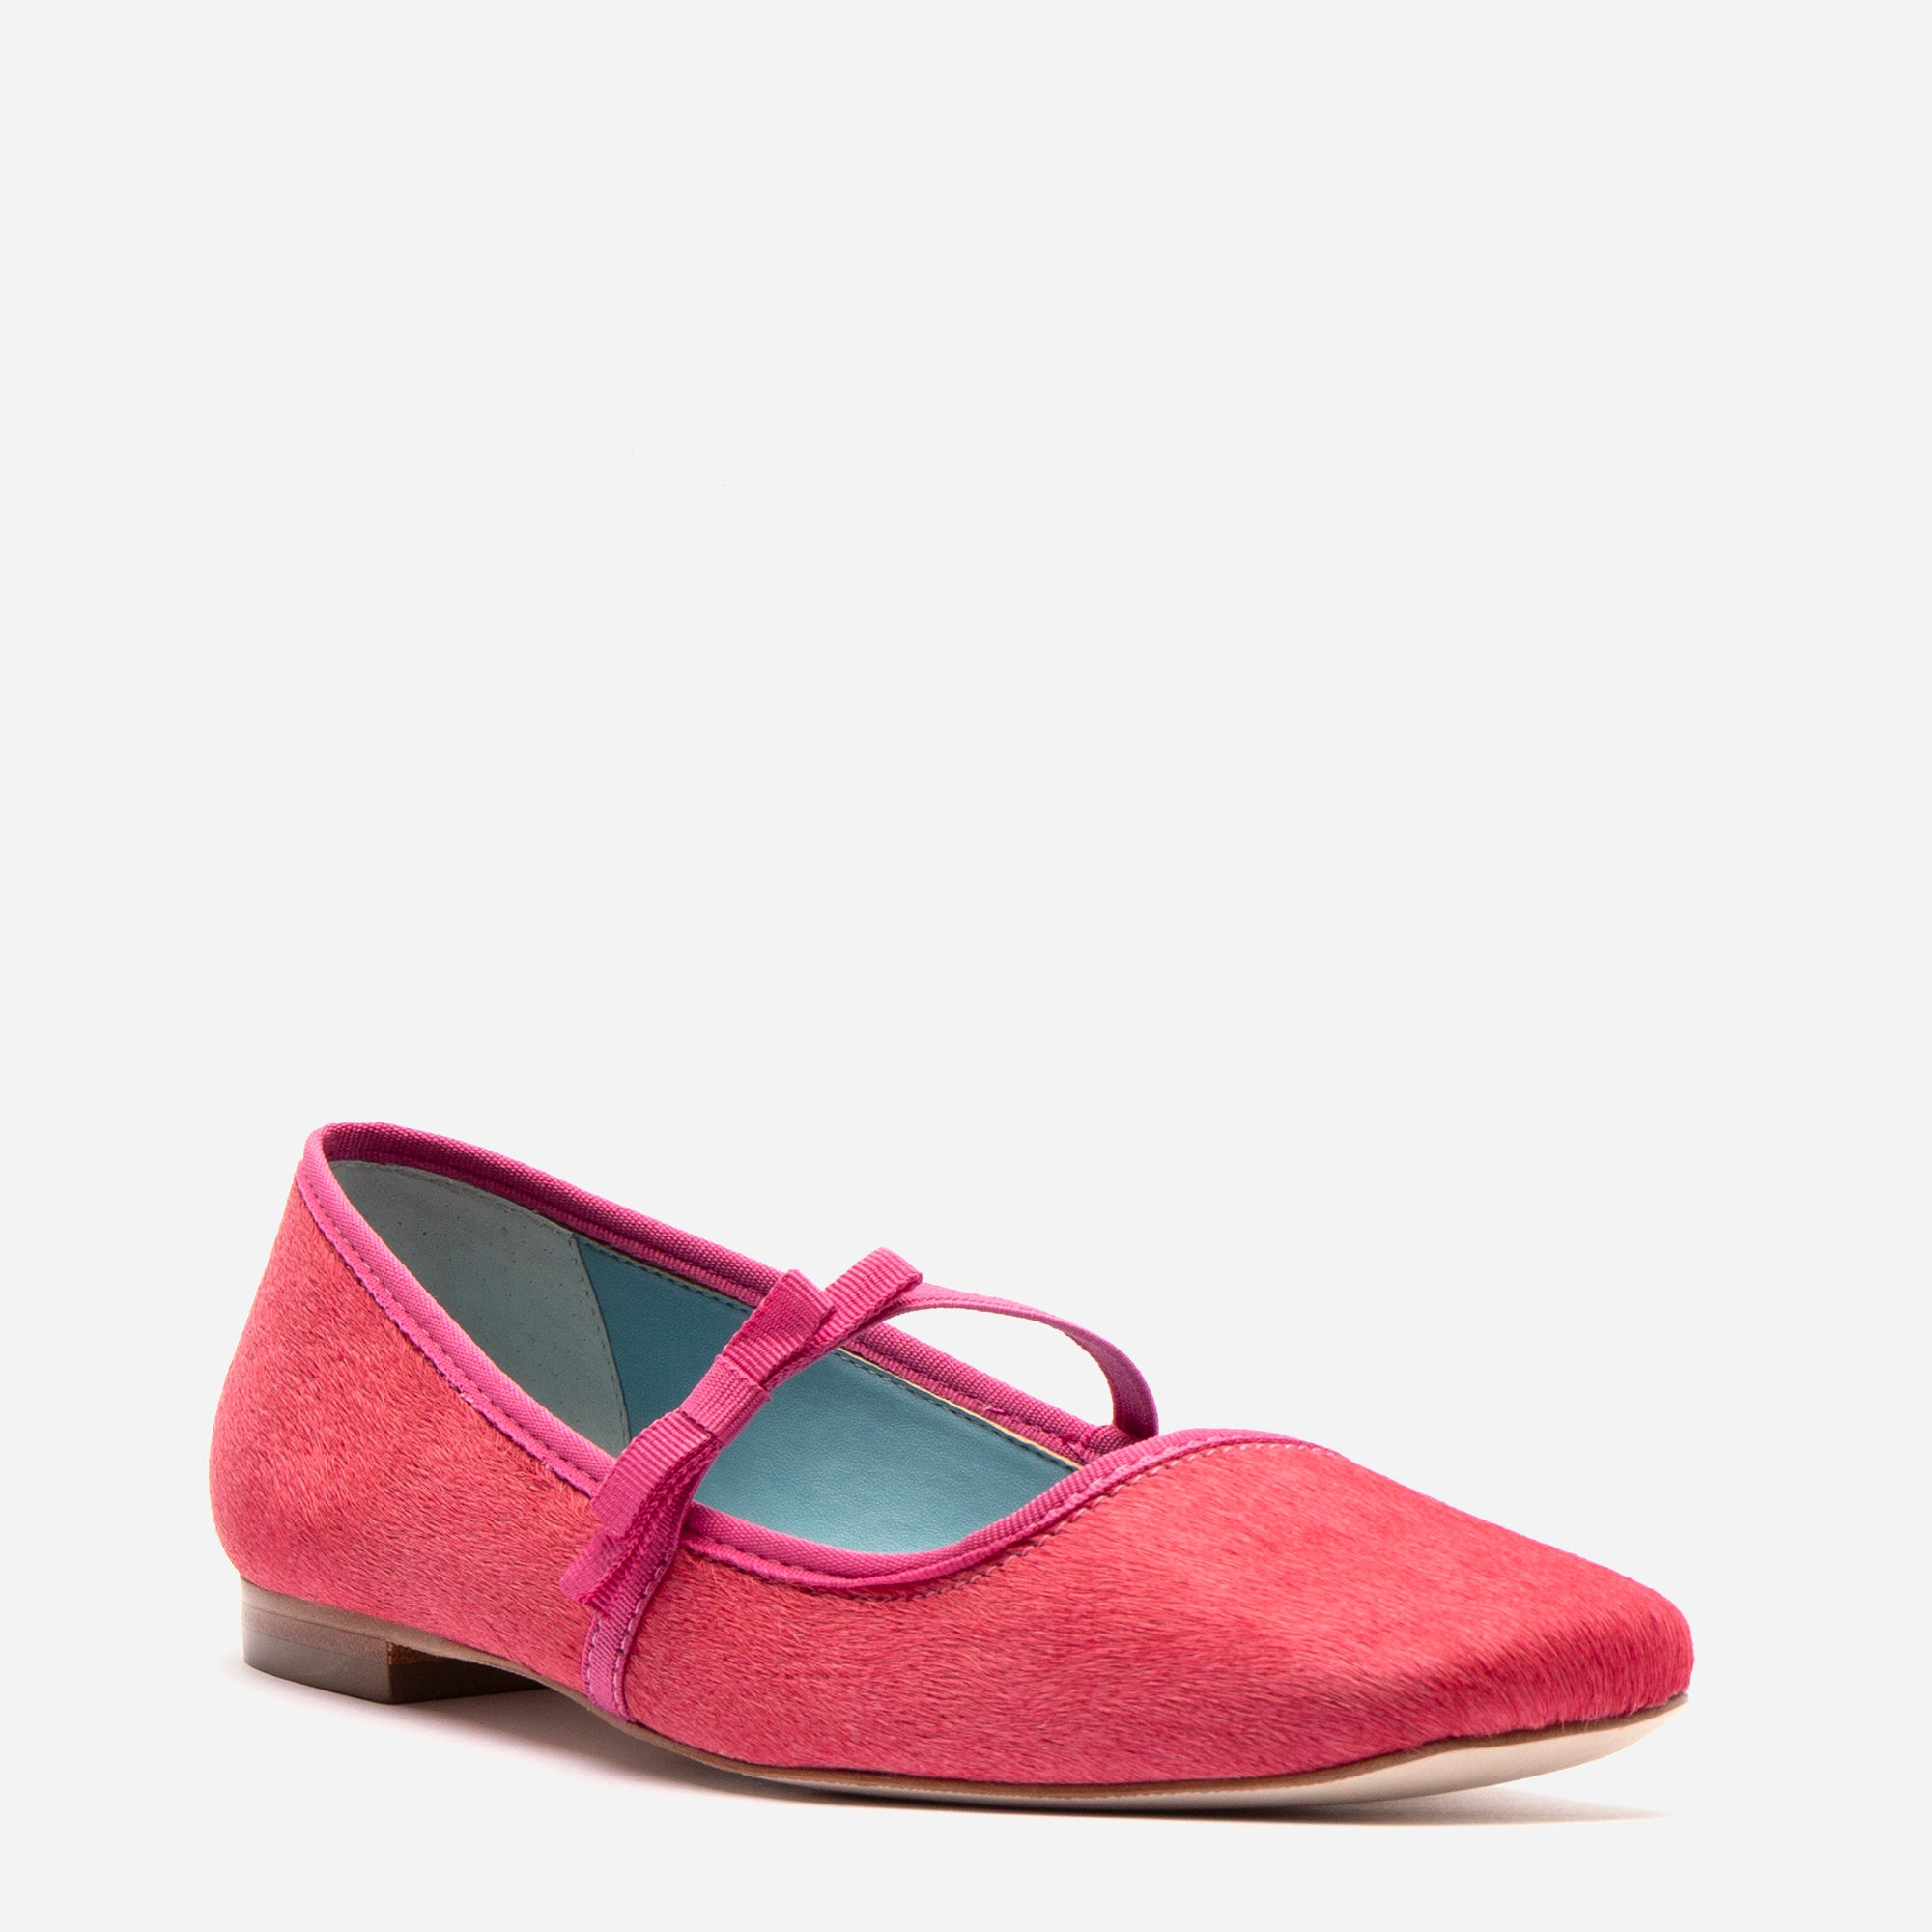 Jude Mary Jane Flats Pink Haircalf